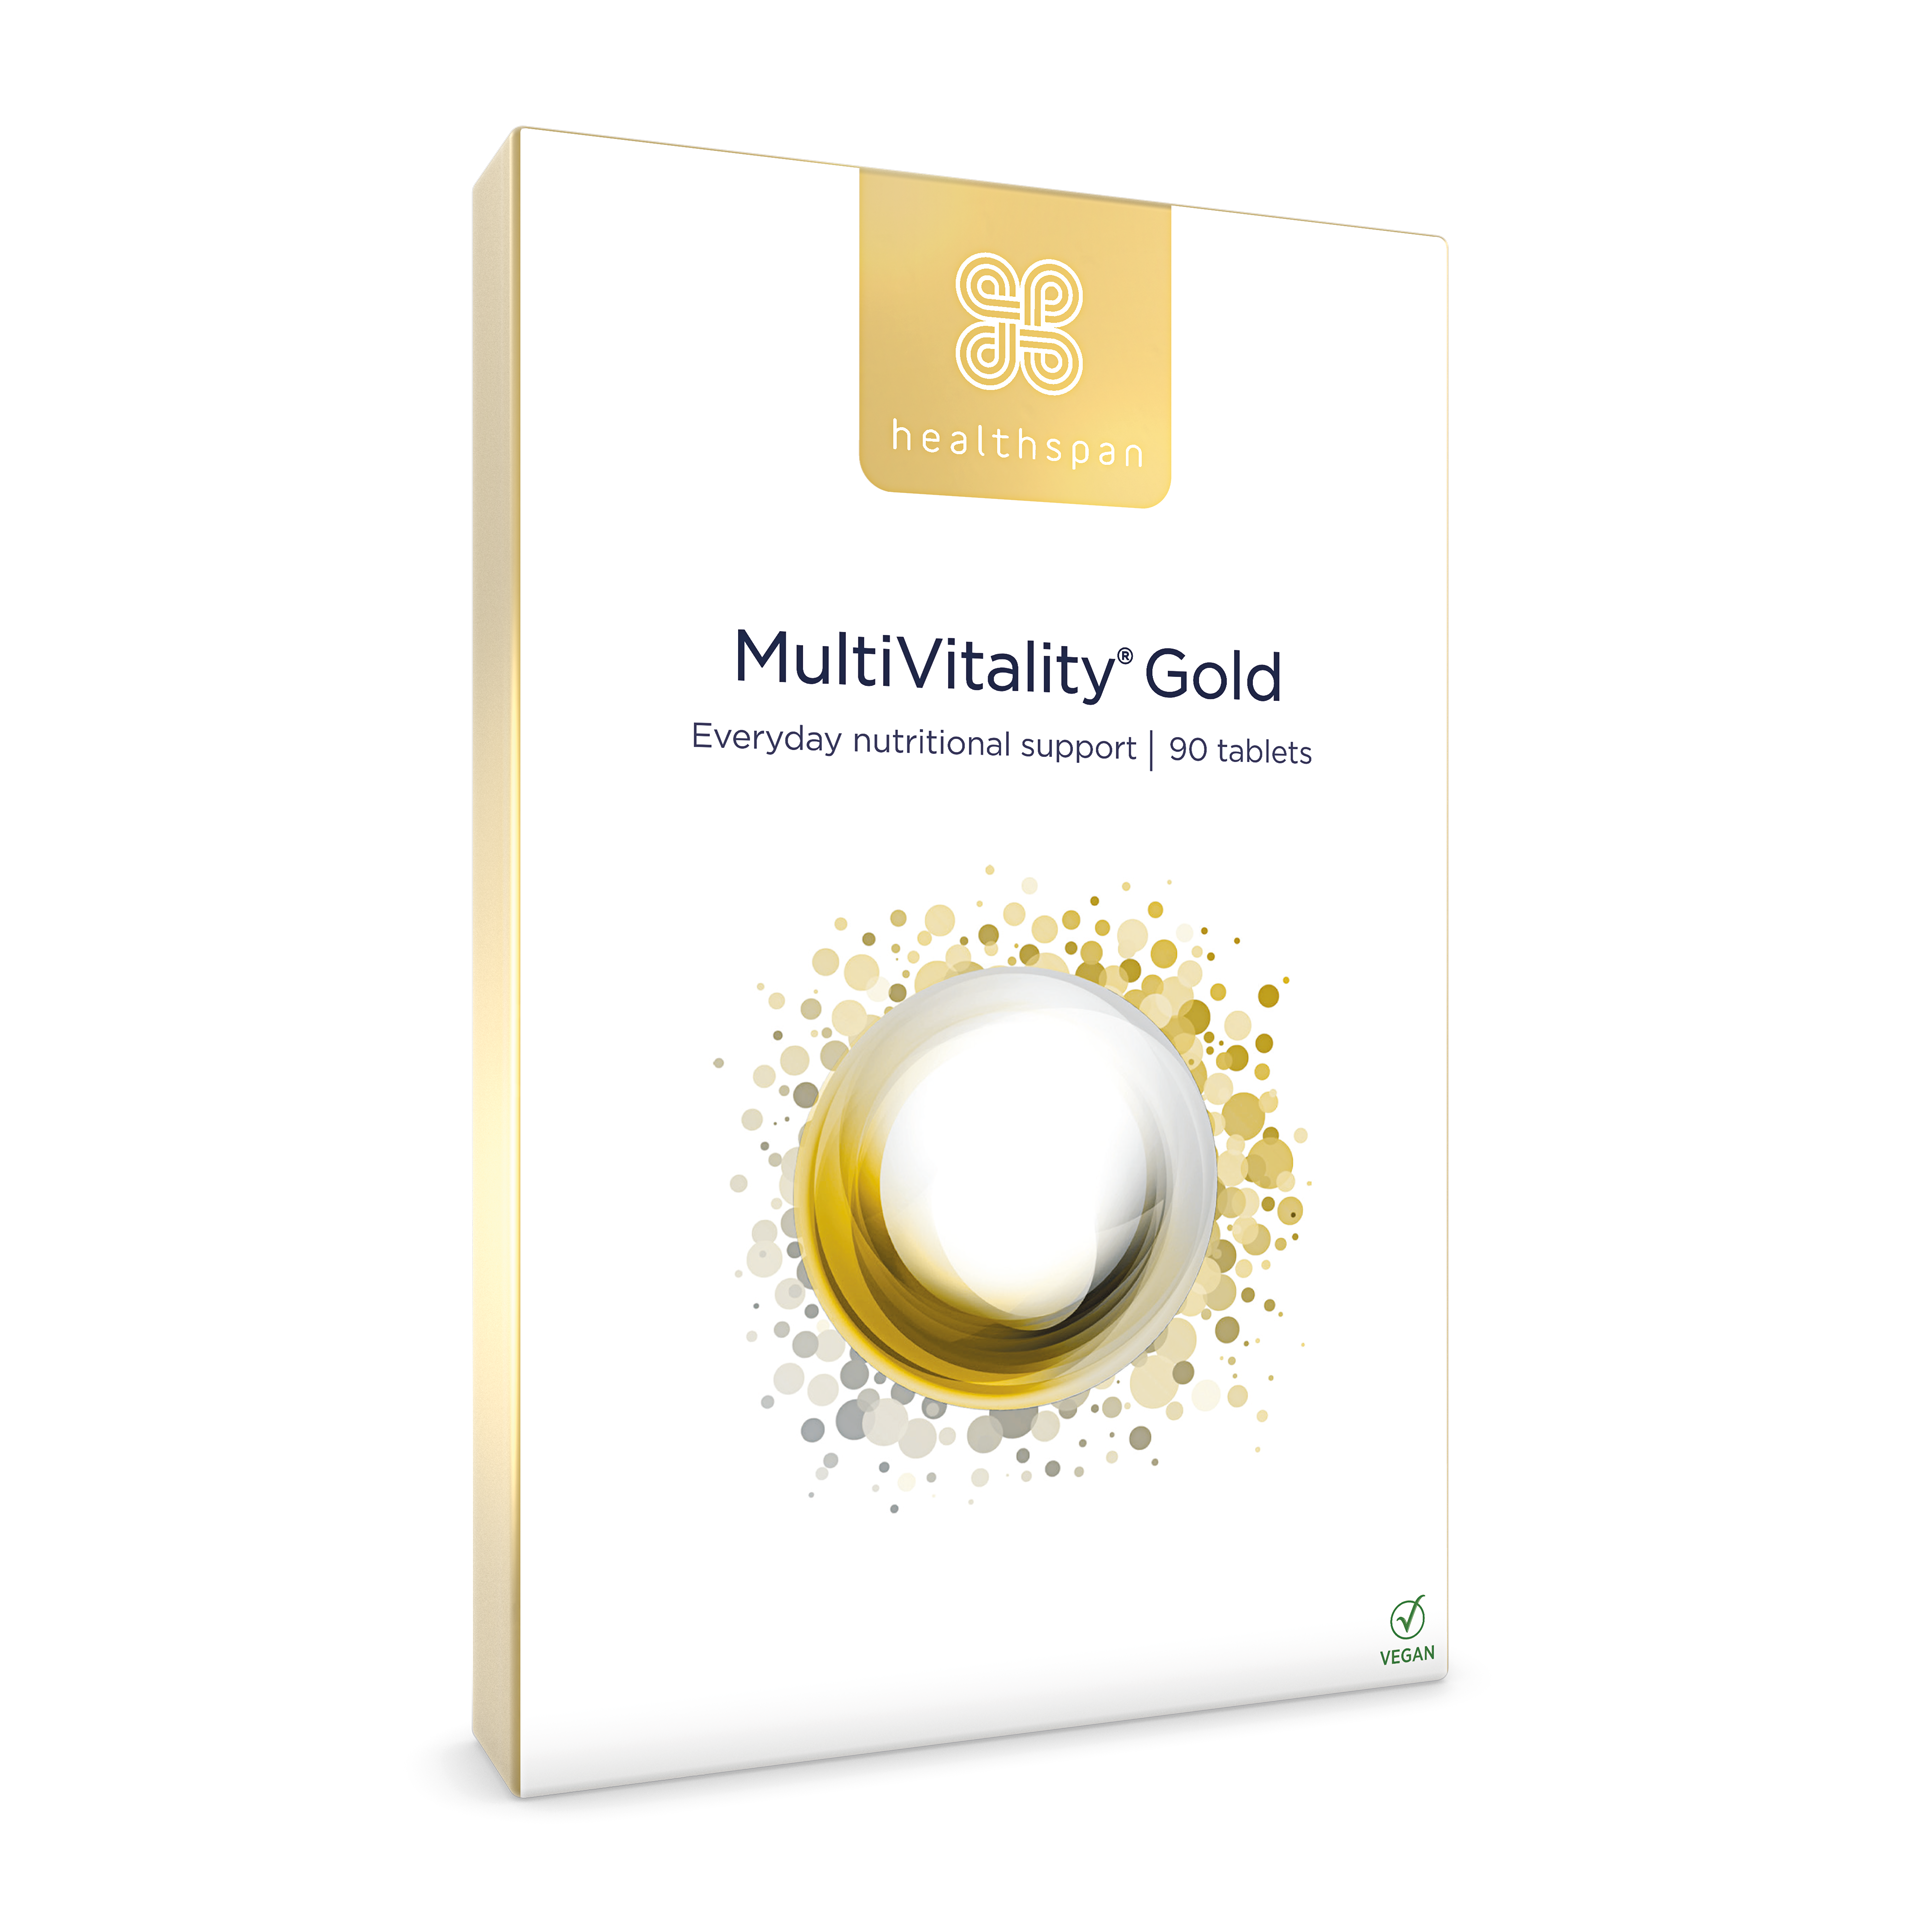 MultiVitality Gold Pack. 90 Tablets. Everyday nutritional support.